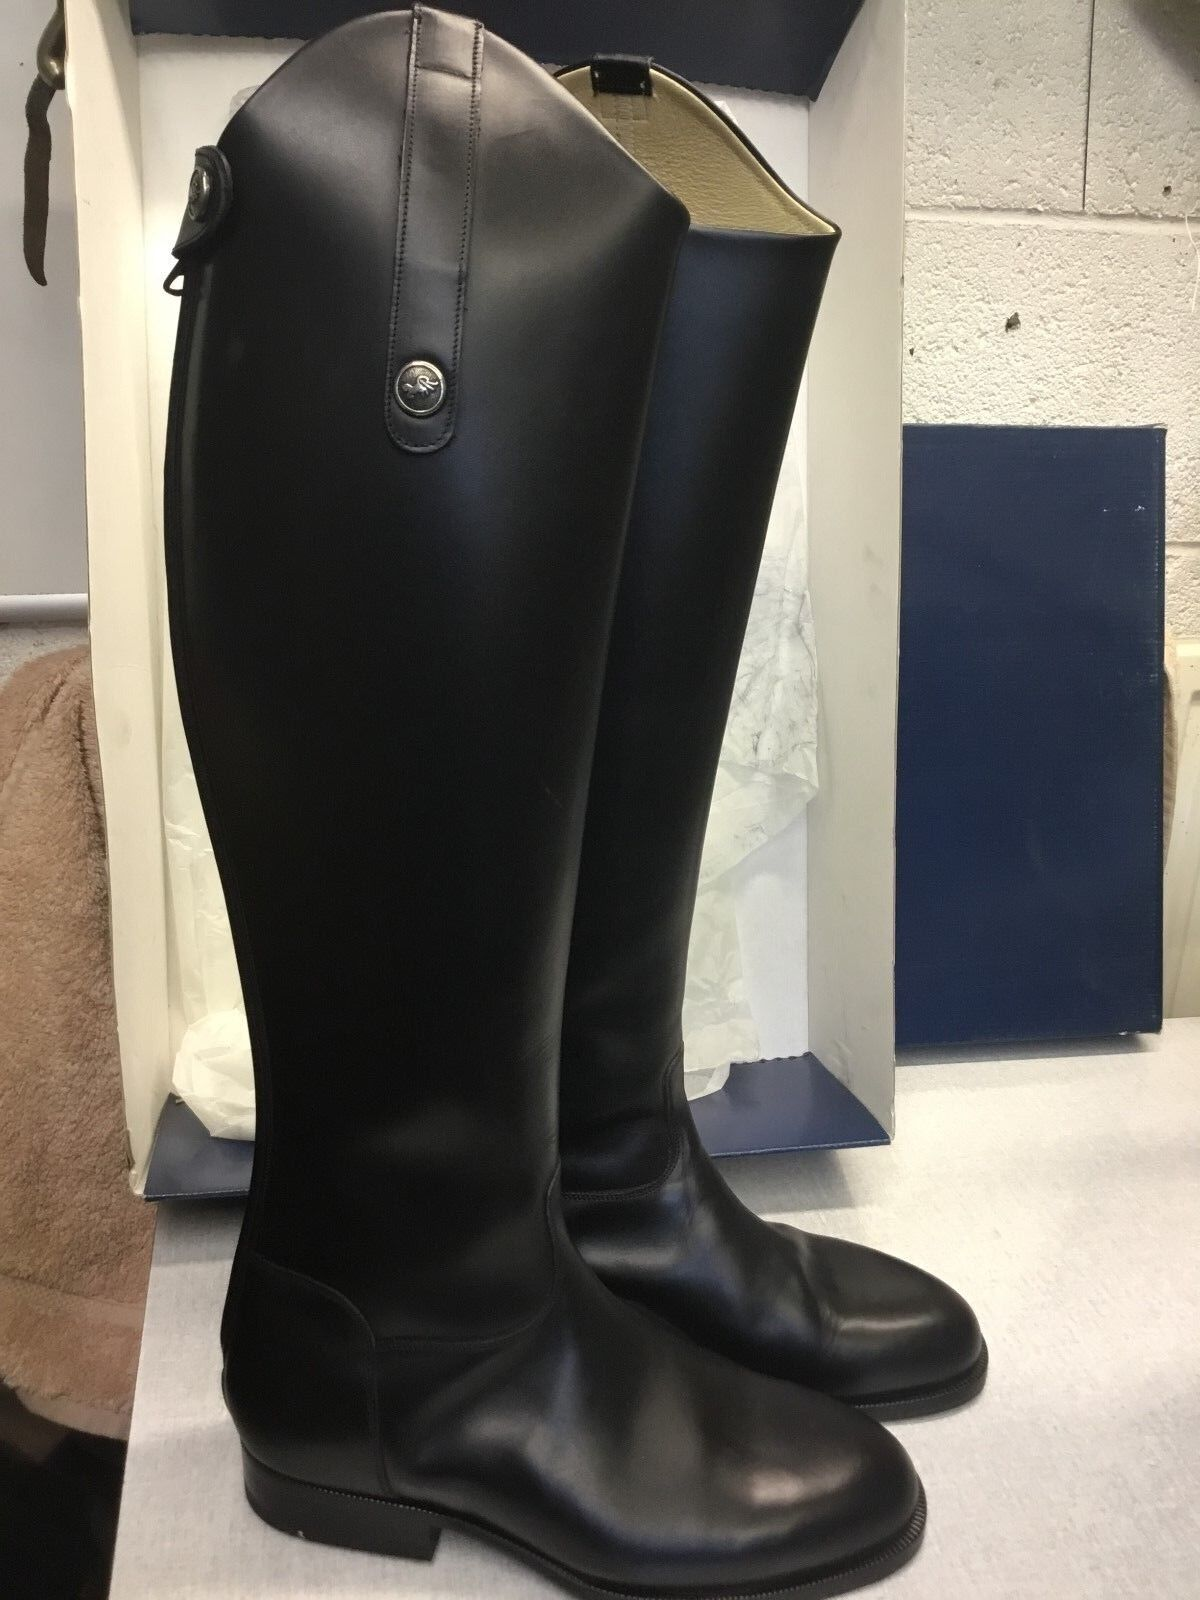 Sarm Hippique Leather Riding Stiefel with zip